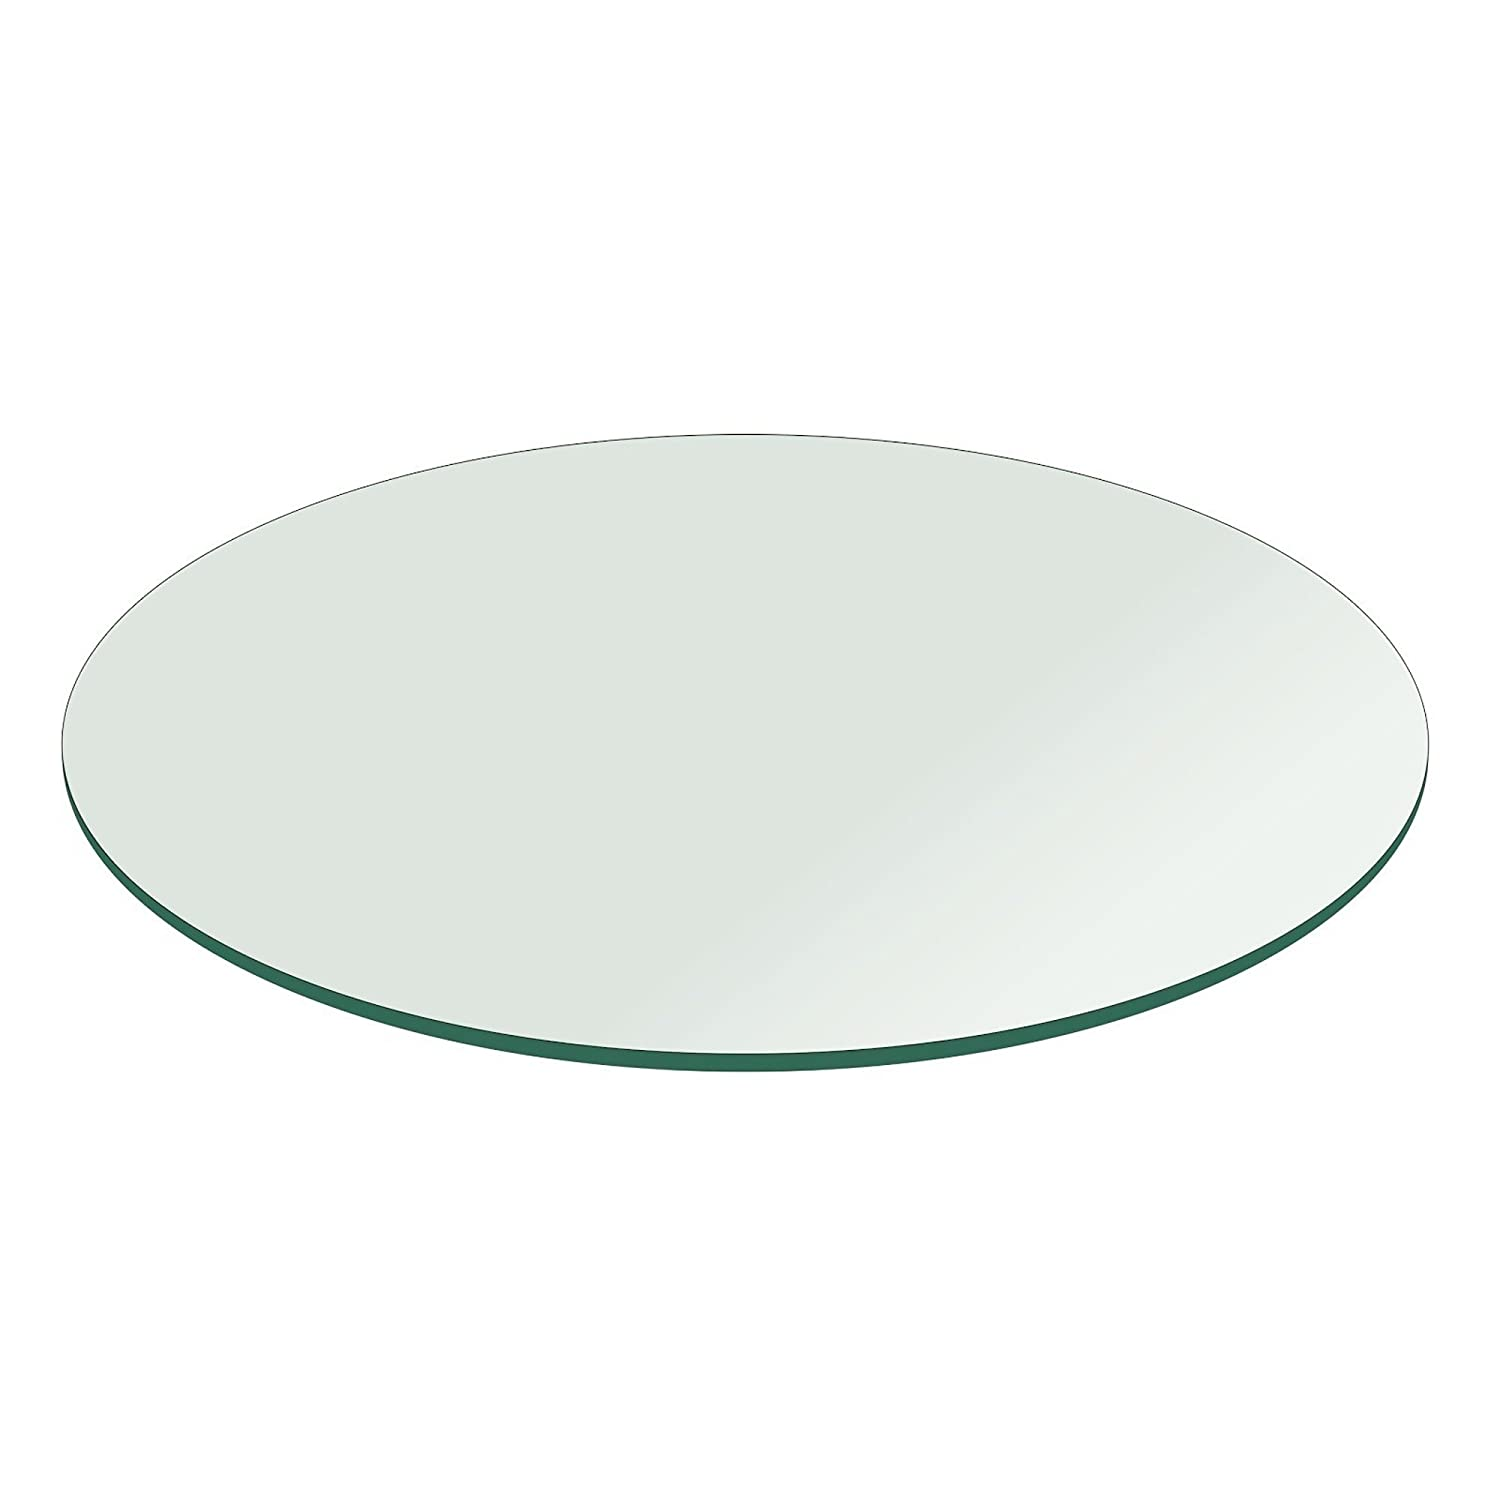 Glass Table Top: 20 inch Round 1/4 inch Thick Flat Polished Tempered Fab Glass and Mirror 20RT6THFLTE